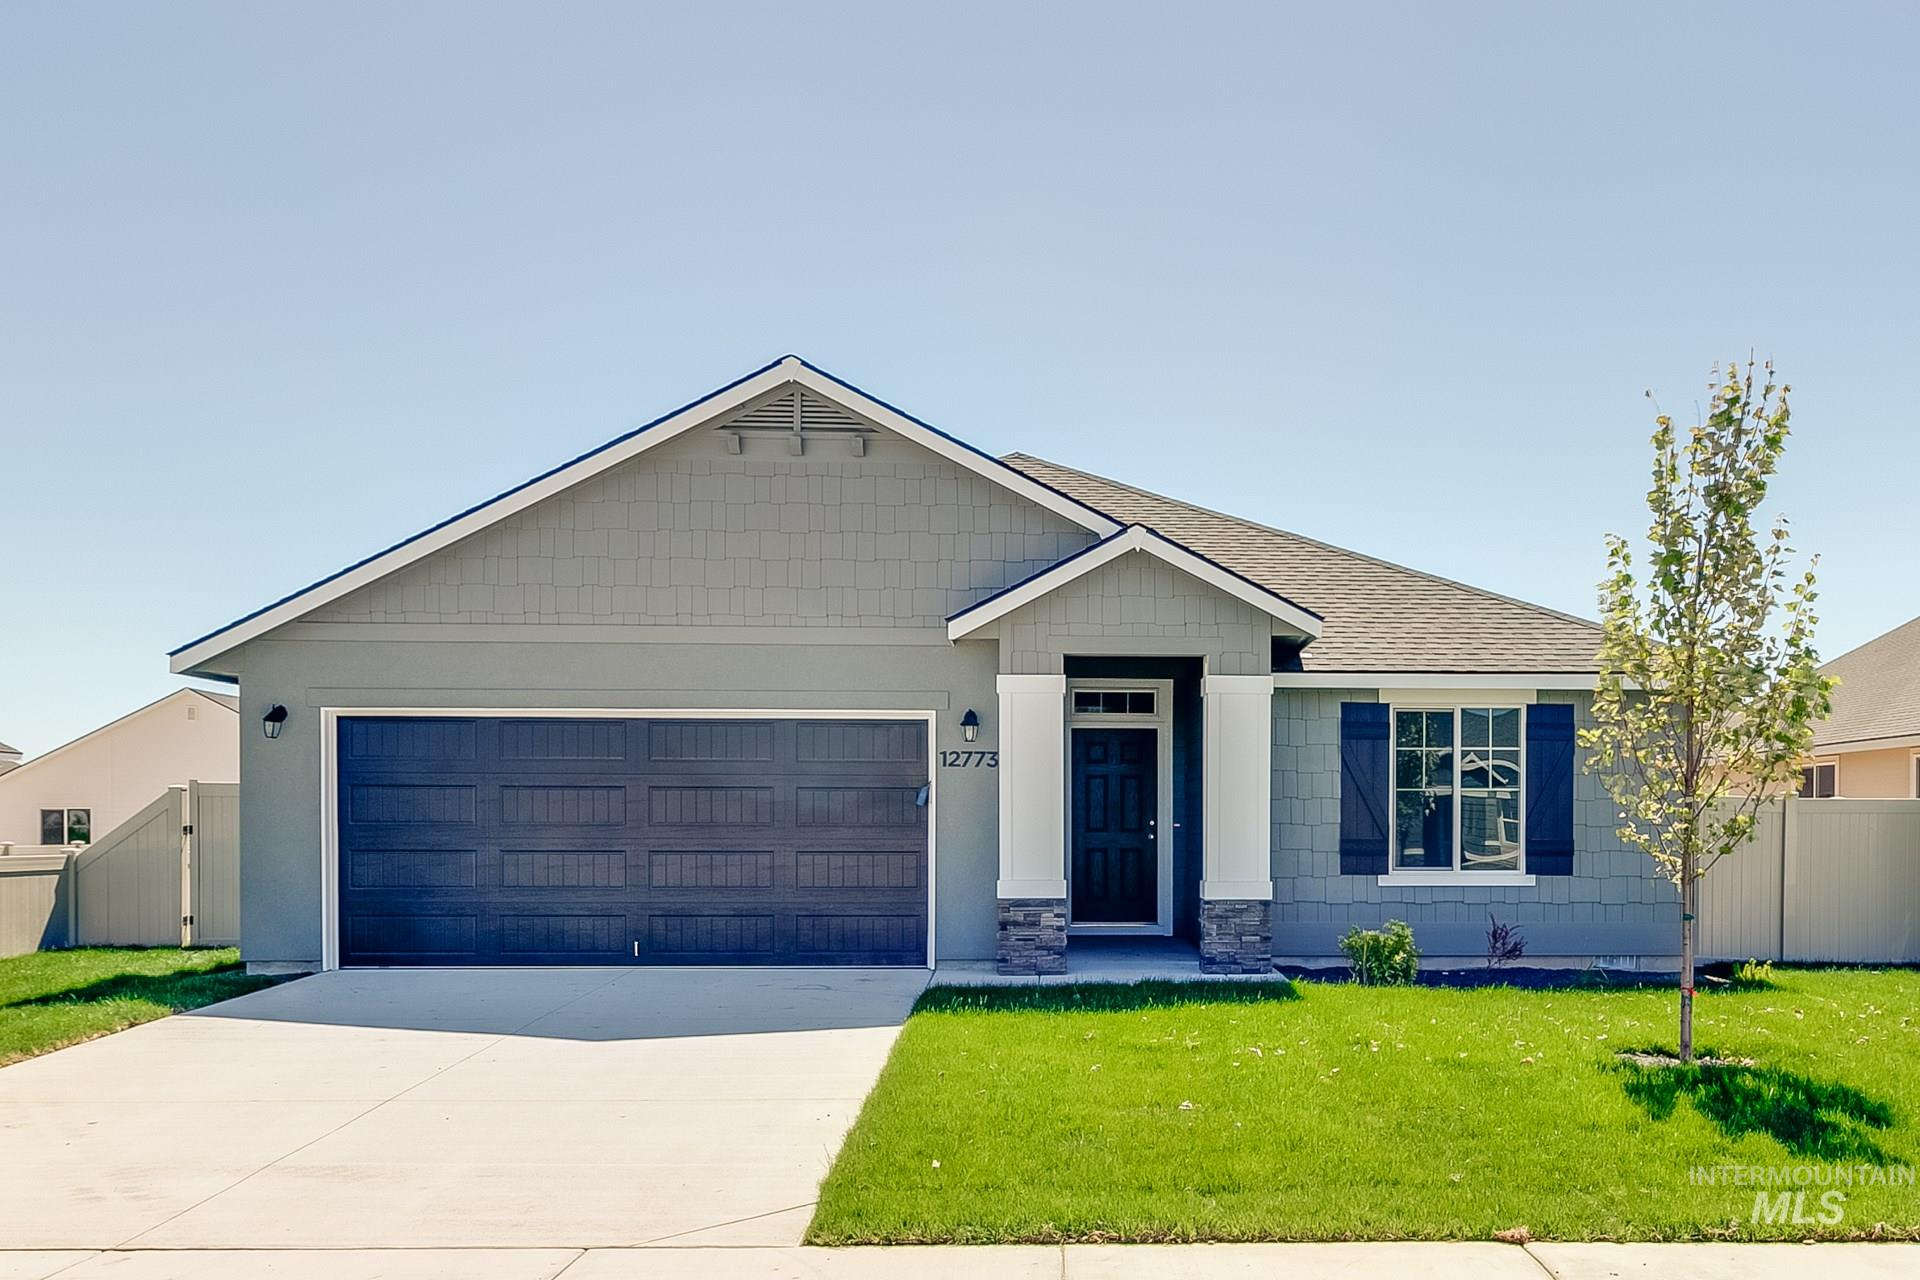 Photo for 11922 W Box Canyon St, Star, ID 83669 (MLS # 98776209)